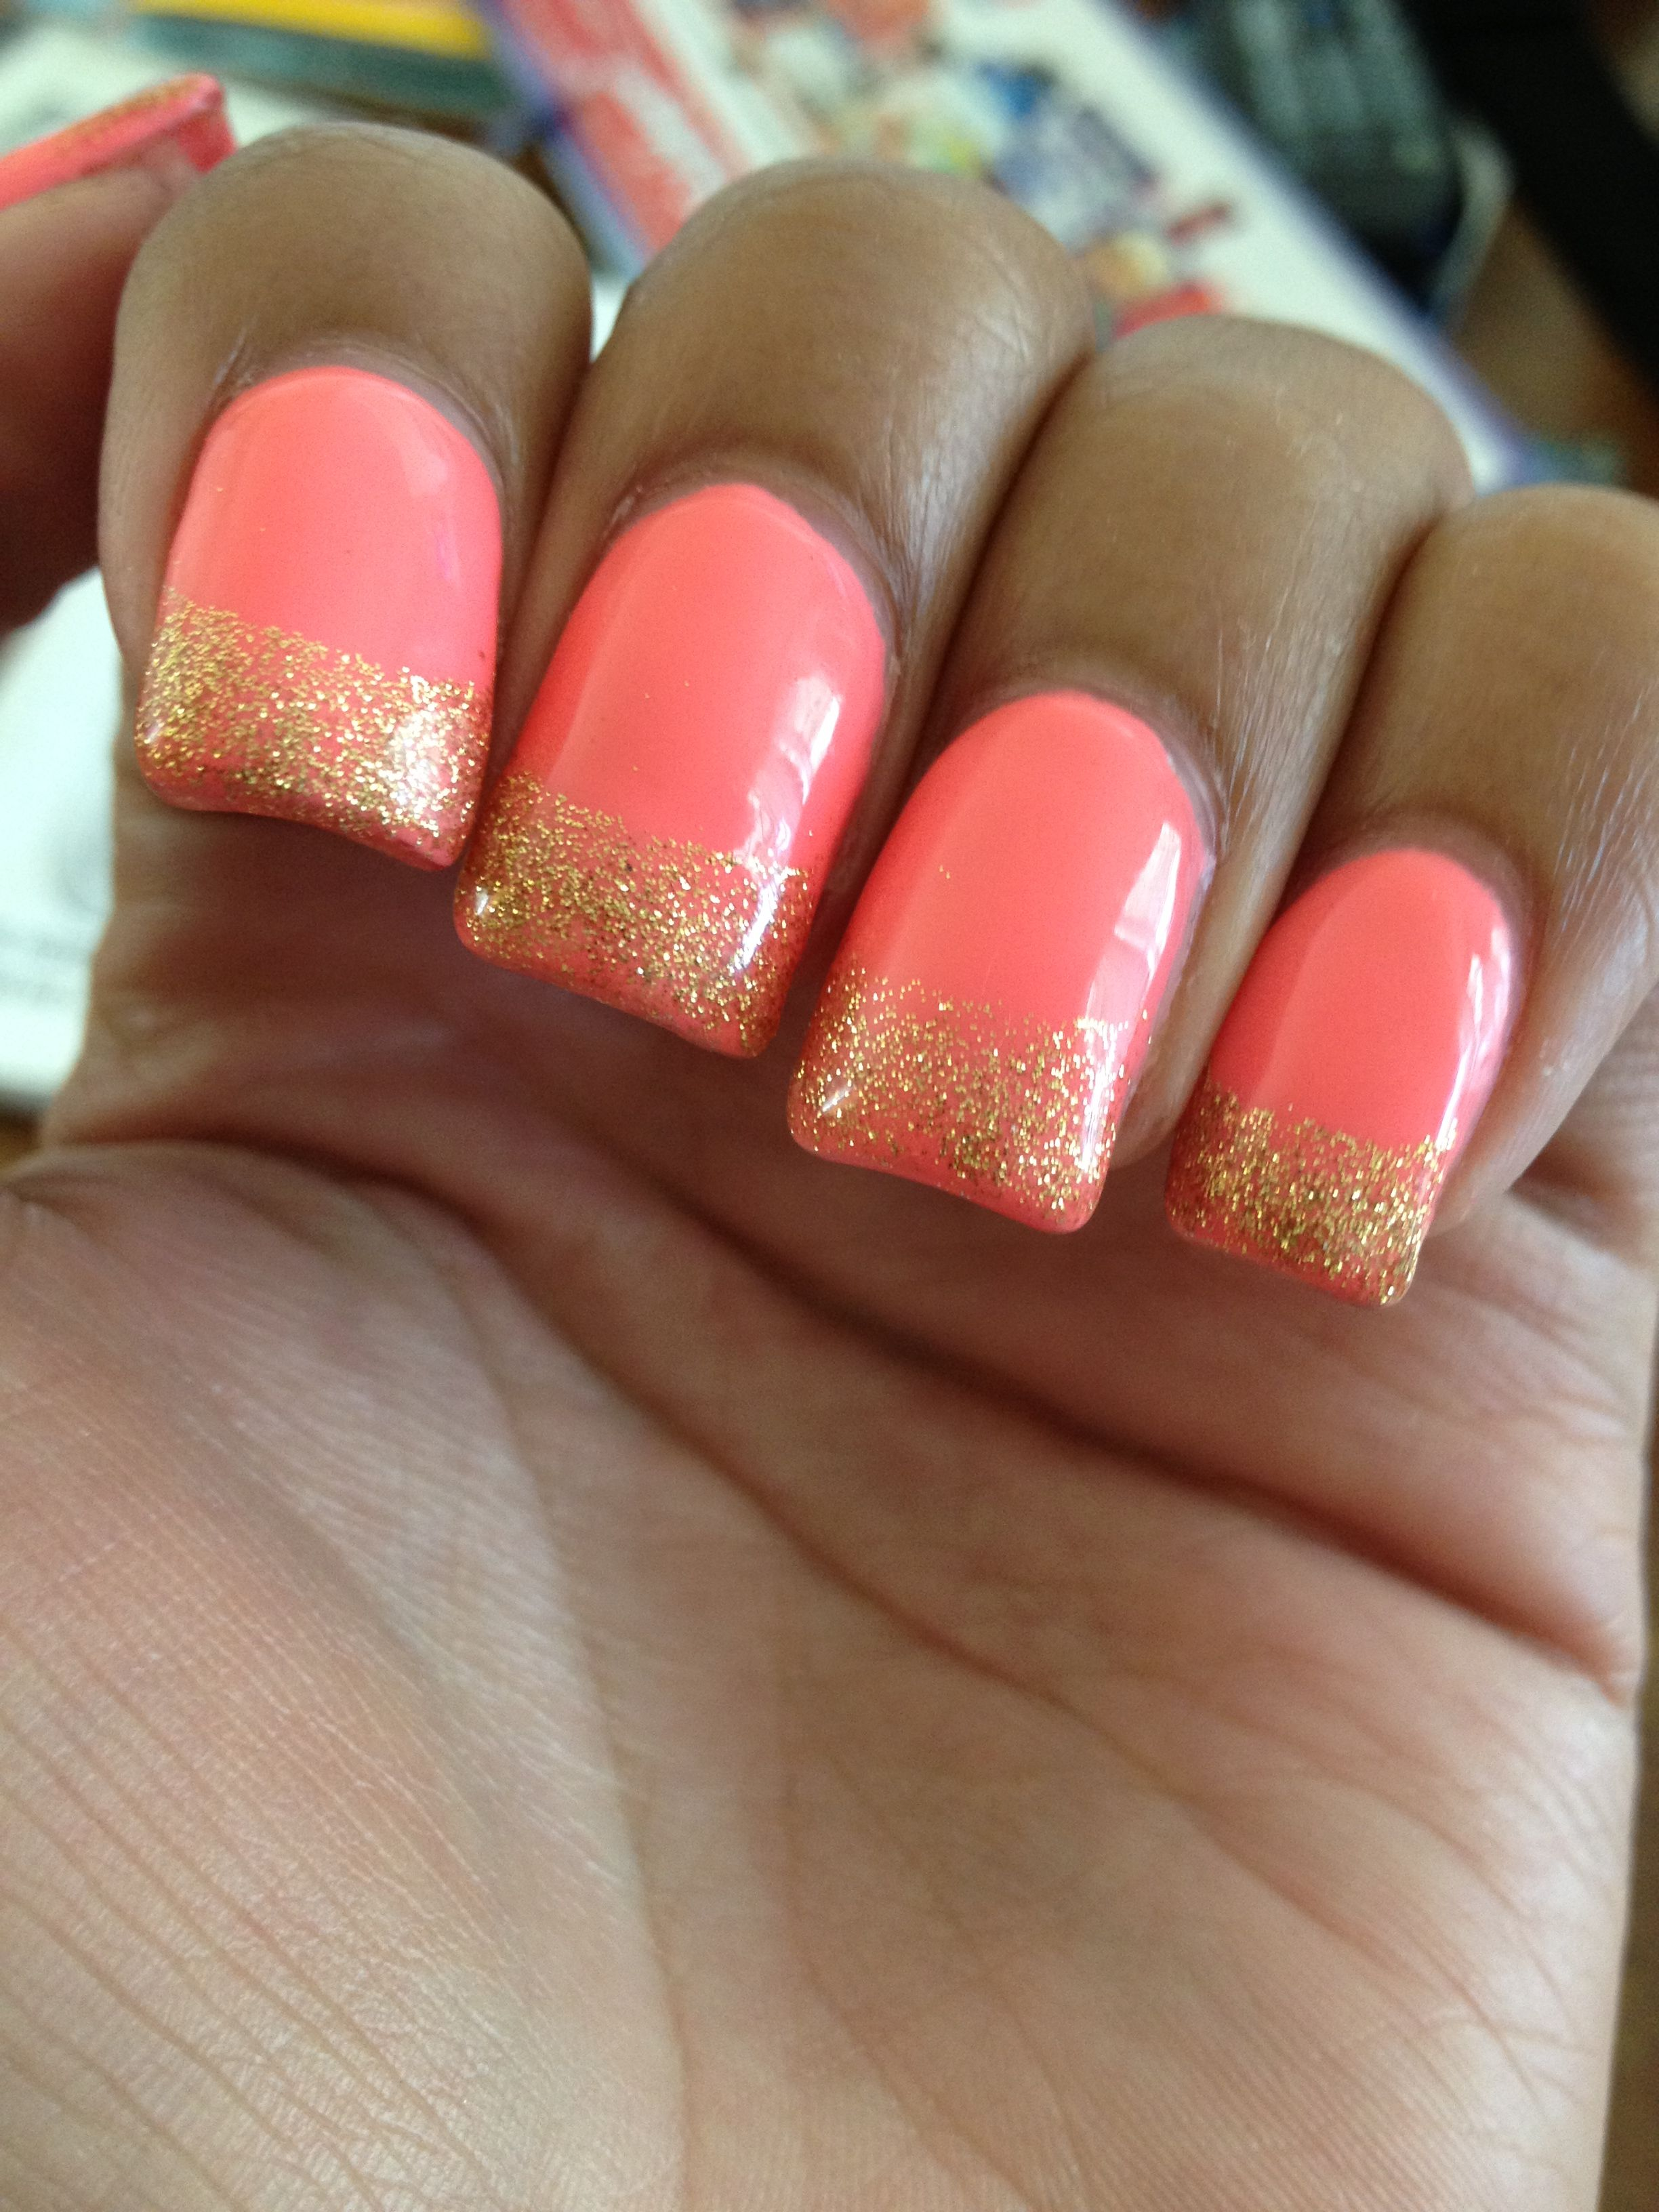 Gel Nails. Summer Colors. Salmon Orange With Gold Glitter Tips. | Things I Love | Pinterest